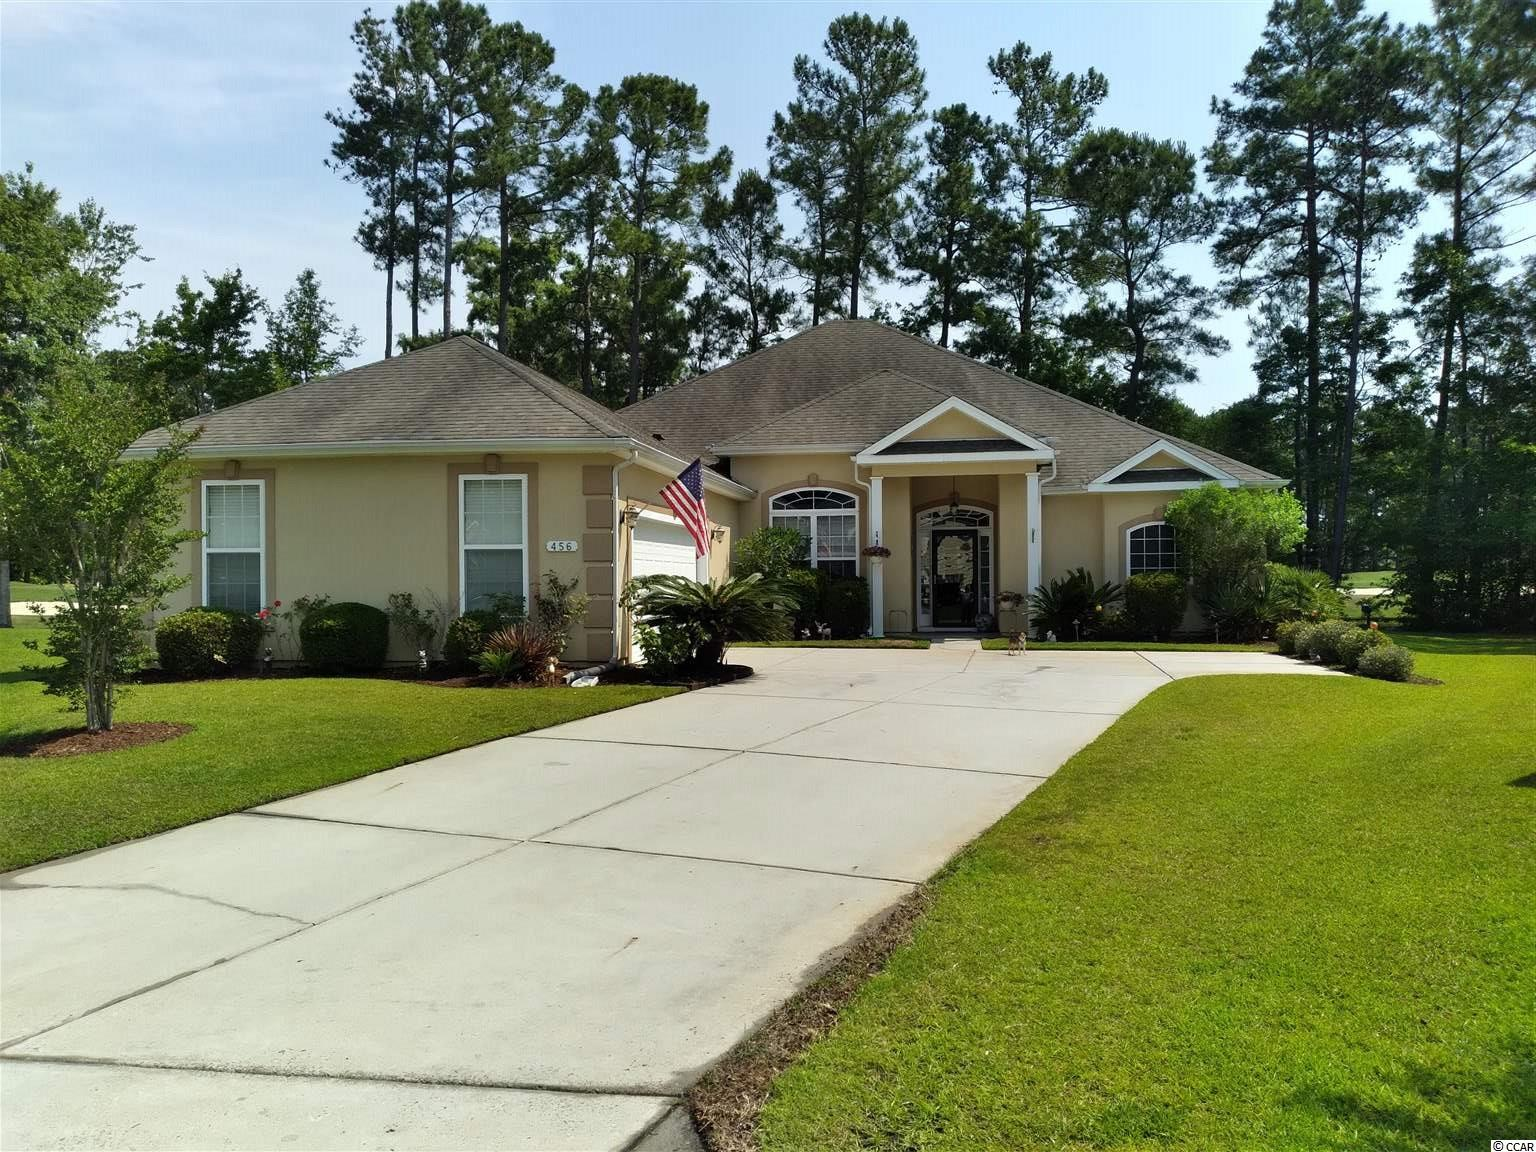 Welcome to your beautiful large home in the desirable Arrowhead community.  Your own personal oasis is on a culdesac with a pond off the back screened in porch with a great golf course view!  This 5 bedroom, 2 bath home with a 2 car garage is spacious enough to entertain your large group of family and friends.  The master bedroom is very large and is on the 1st level, as is 3 of the 4 other bedrooms.  The master bath features a dual vanity along with a garden tub, walk in shower and a walk in closet.  It opens onto your serene screened in porch that overlooks the pond and golf course; and the hot tub in back conveys with the home!  The large bonus room upstairs can be used as the 5th bedroom.  The HVAC system and hot water heater are both 3 years old.  This house will not last long, so call today to schedule your personal showing; you'll be glad you did!!  Additional photos will be added next week.